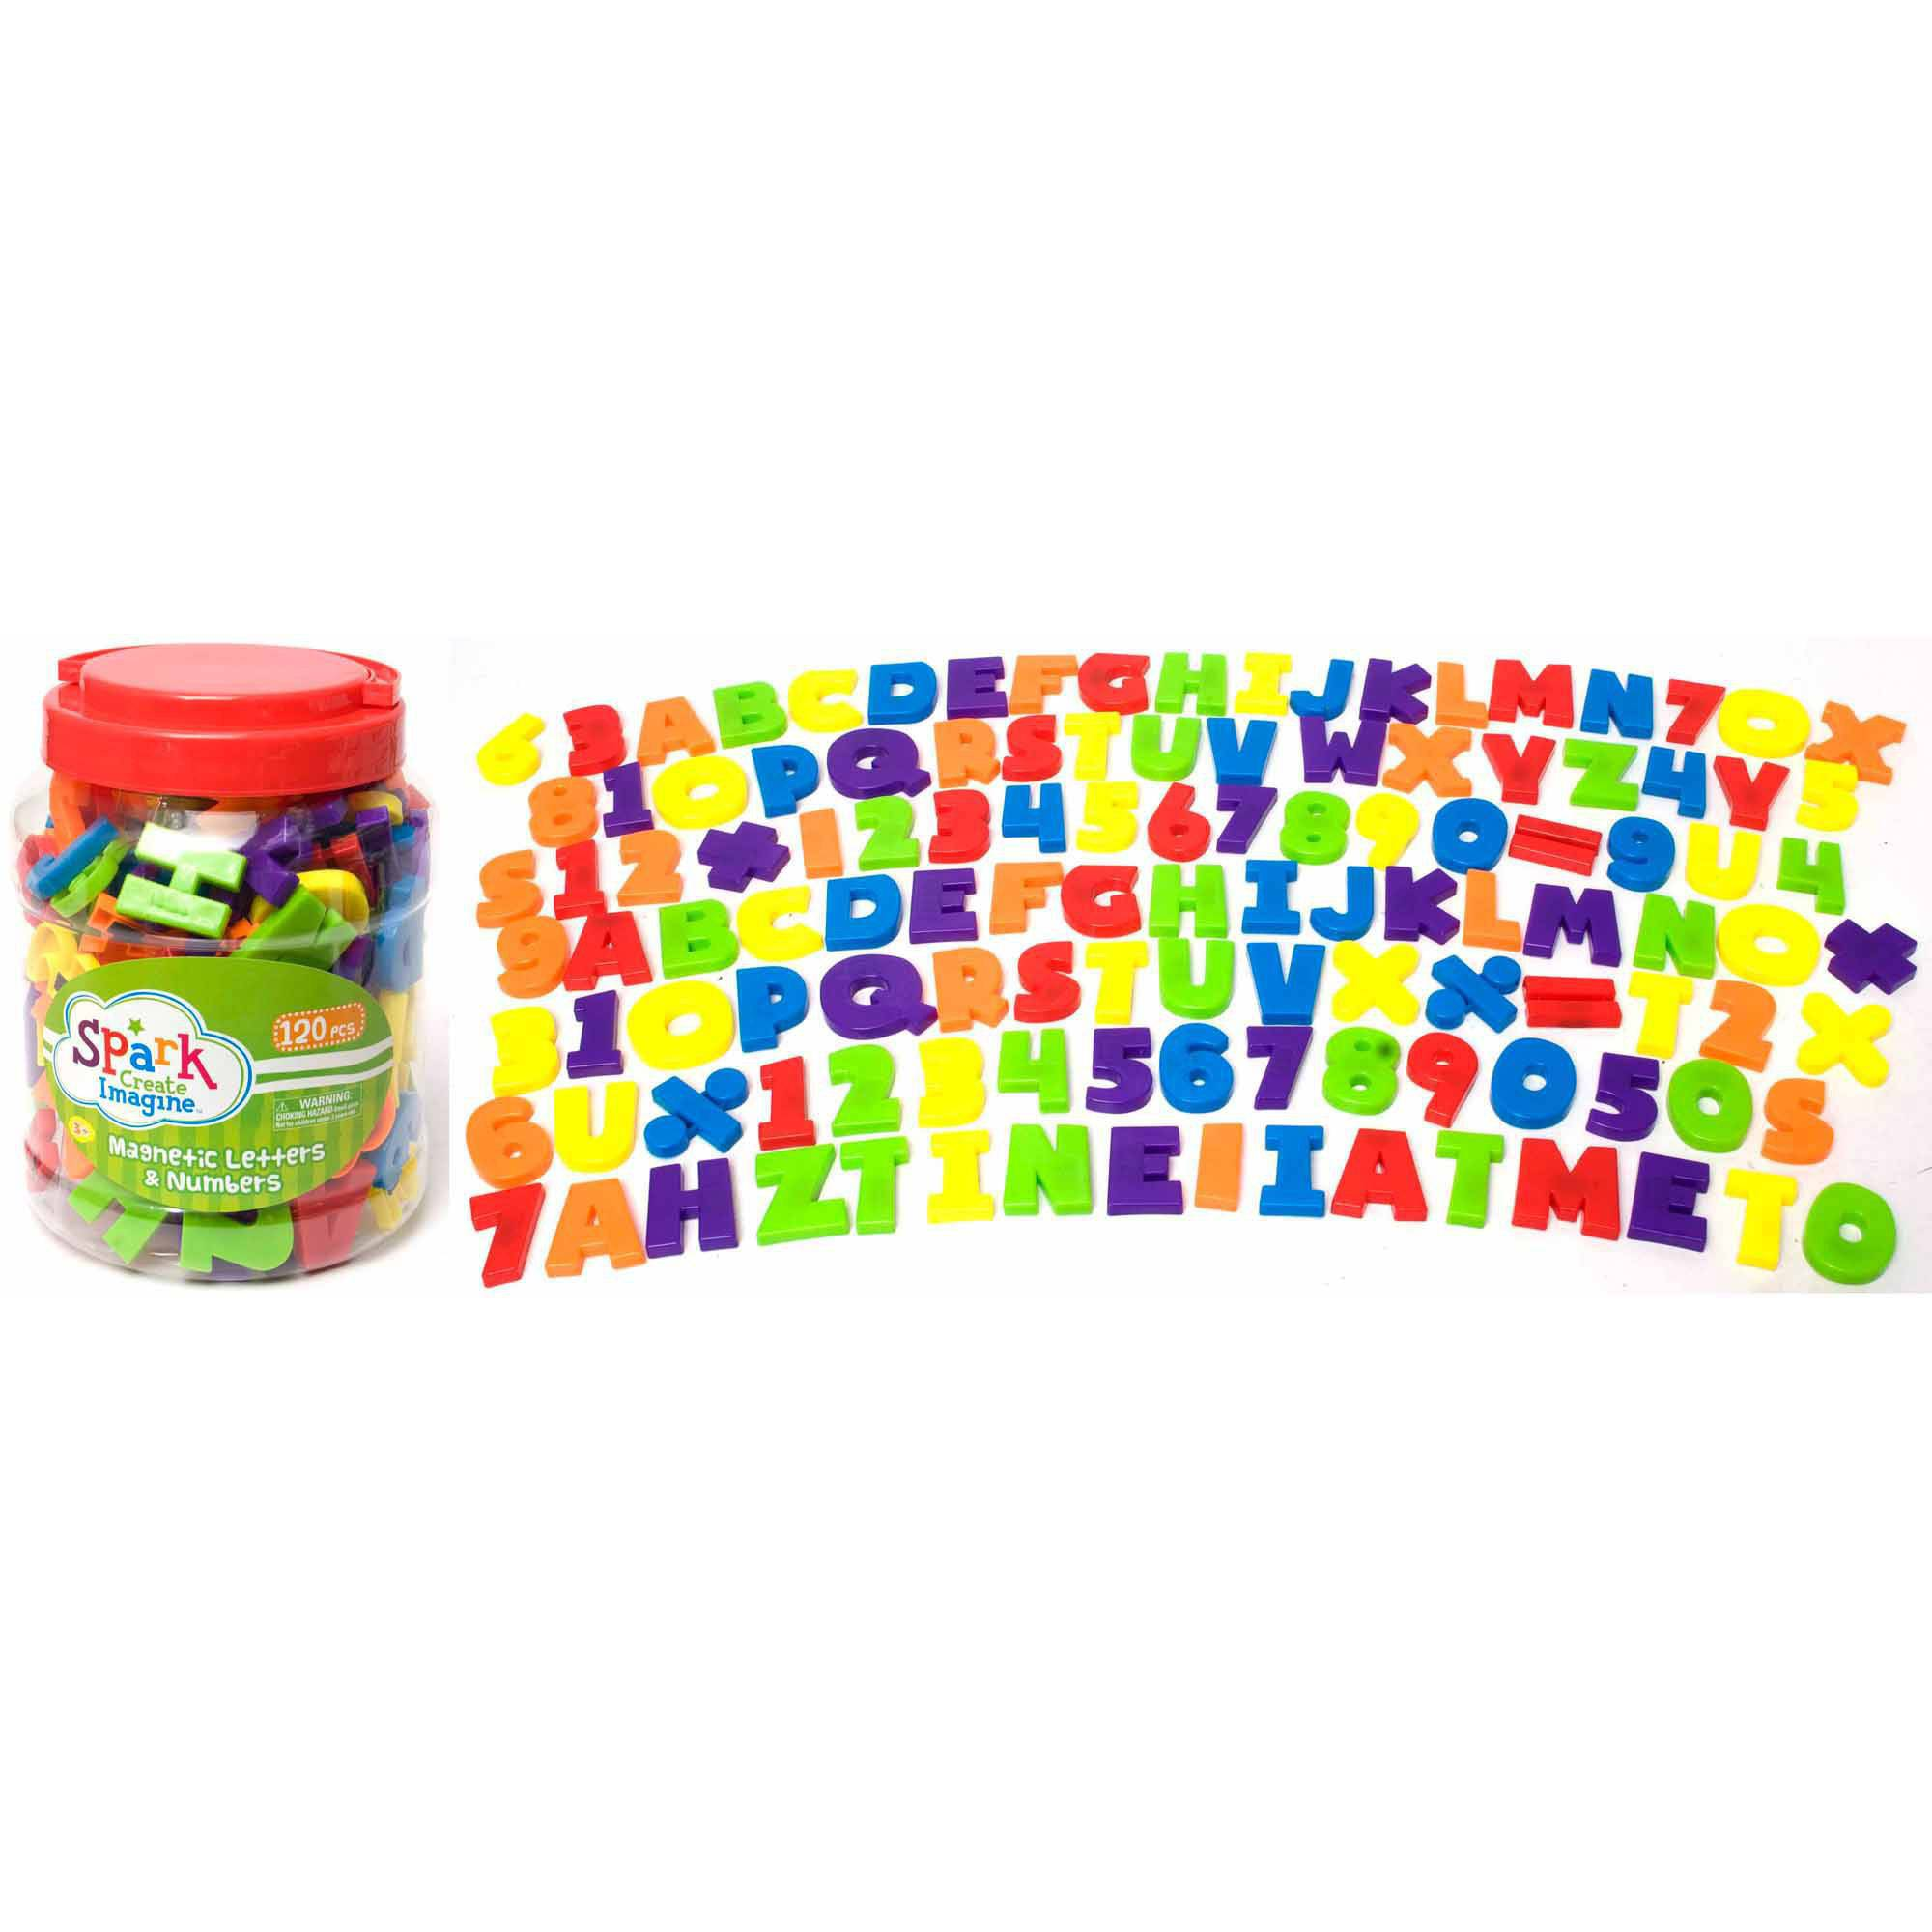 Image of 120-Piece Magnetic Letters and Numbers Set